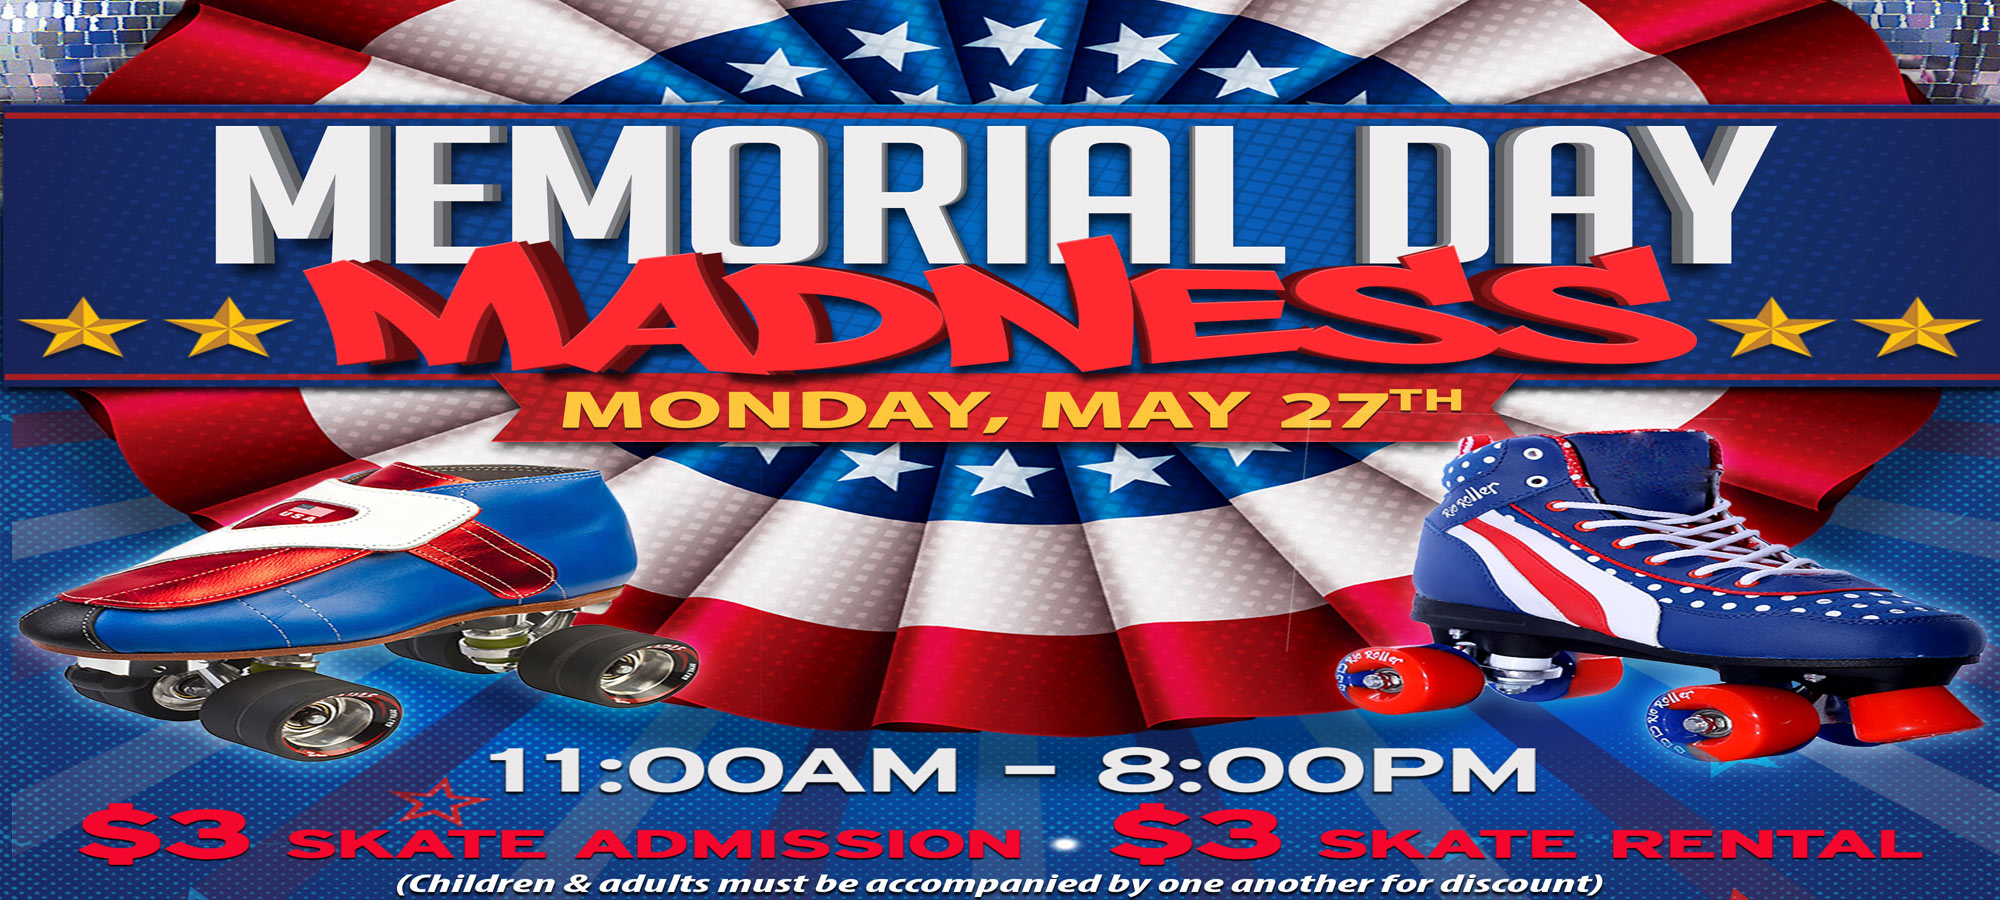 Memorial-Day-Madness-2019-New